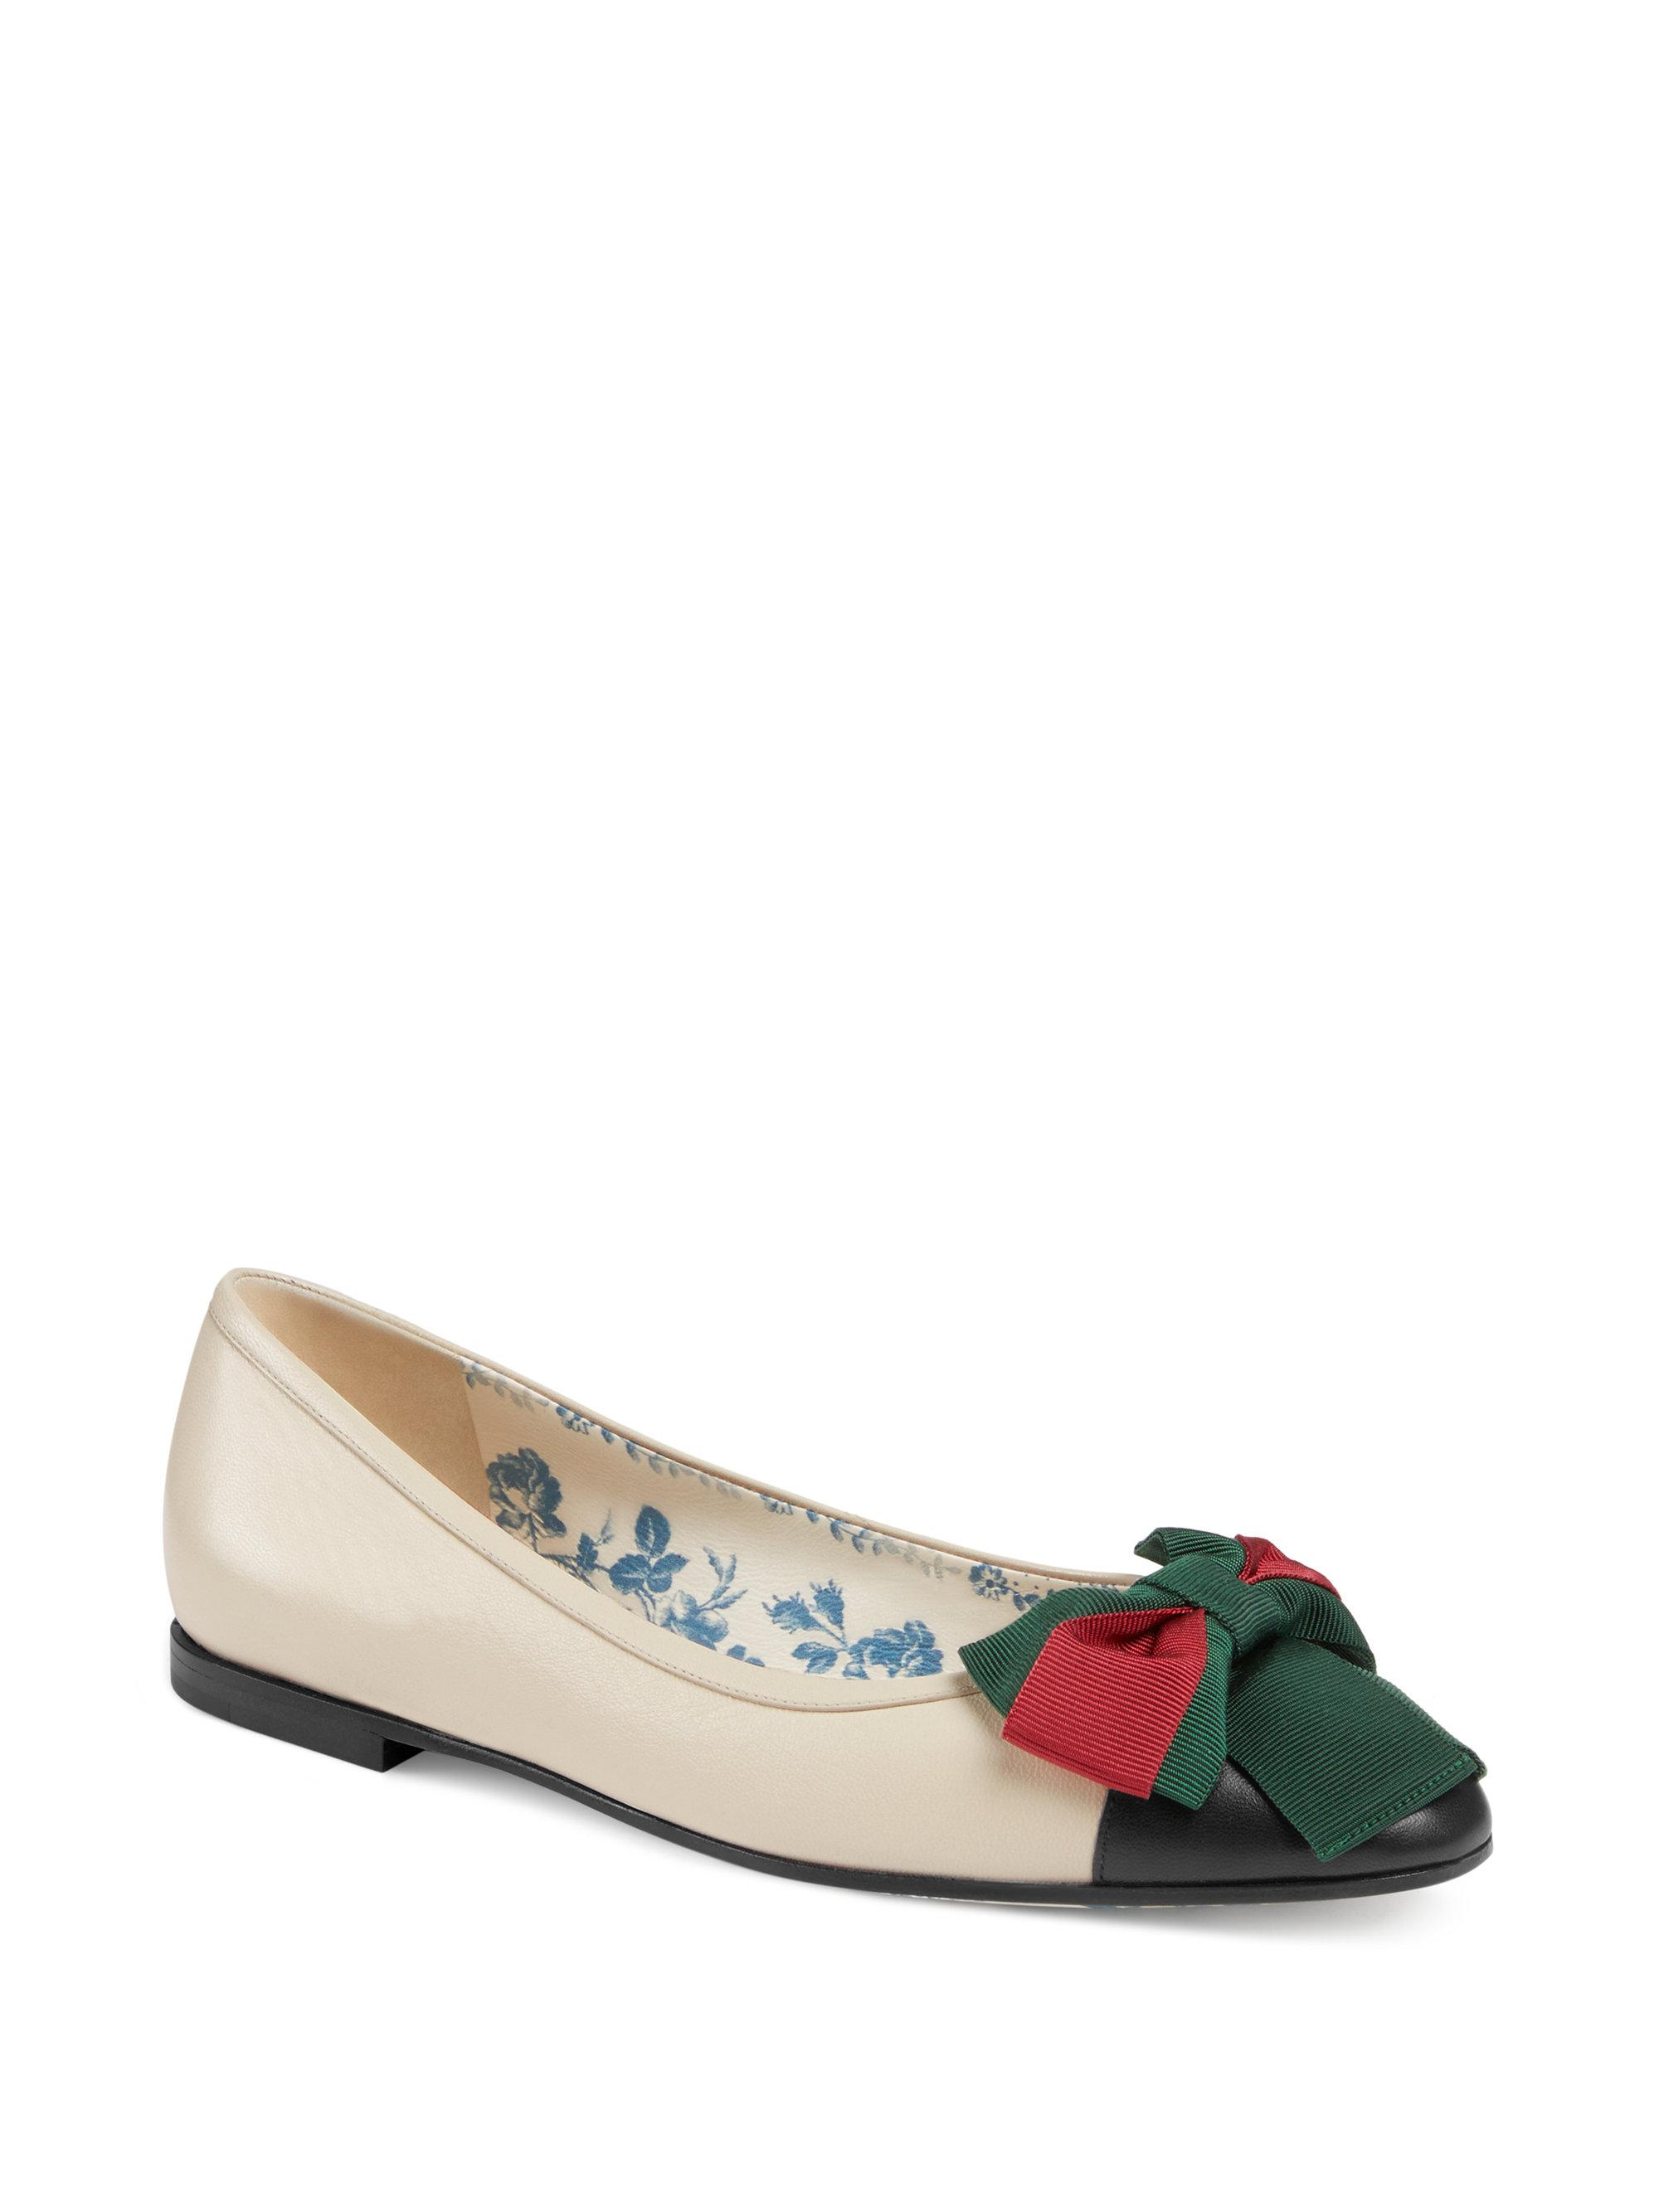 Gucci Sackville Leather Bow Ballerina Flats 2KwnFH6